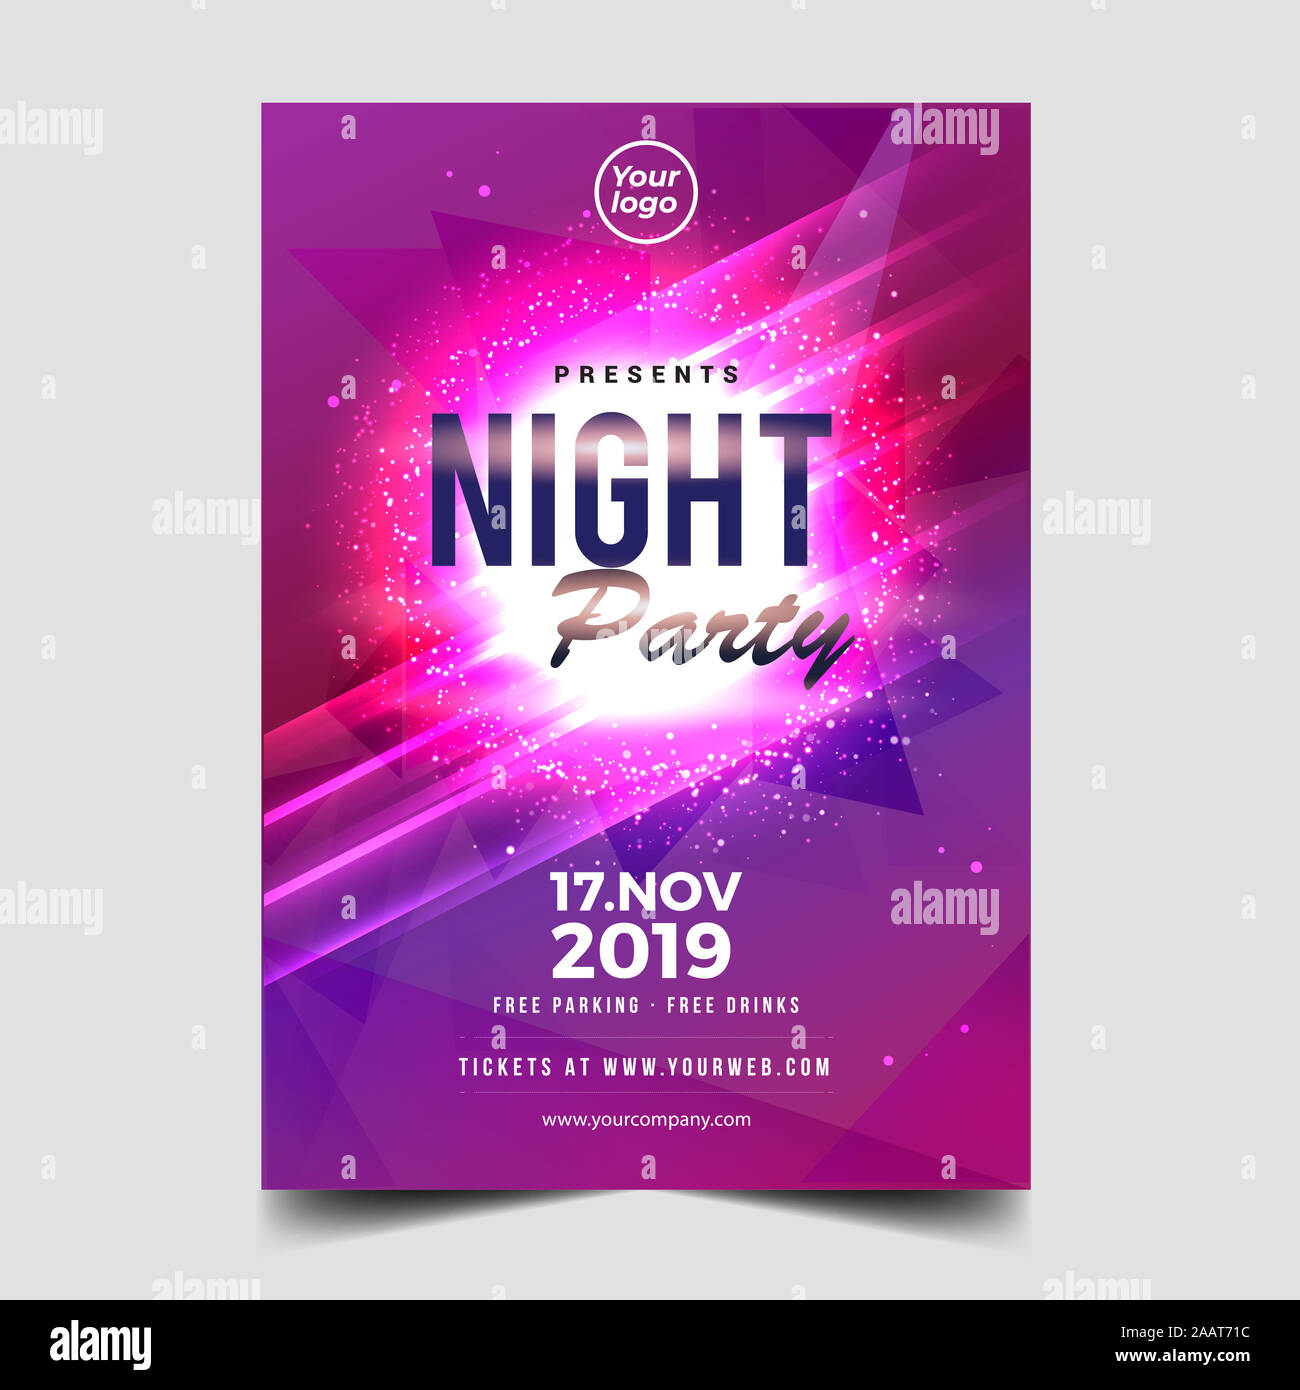 Vector Iilustration Dance Club Night Summer Party Poster Flyer Layout Template Colorful Music Disco Banner Design Vector Stock Photo Alamy